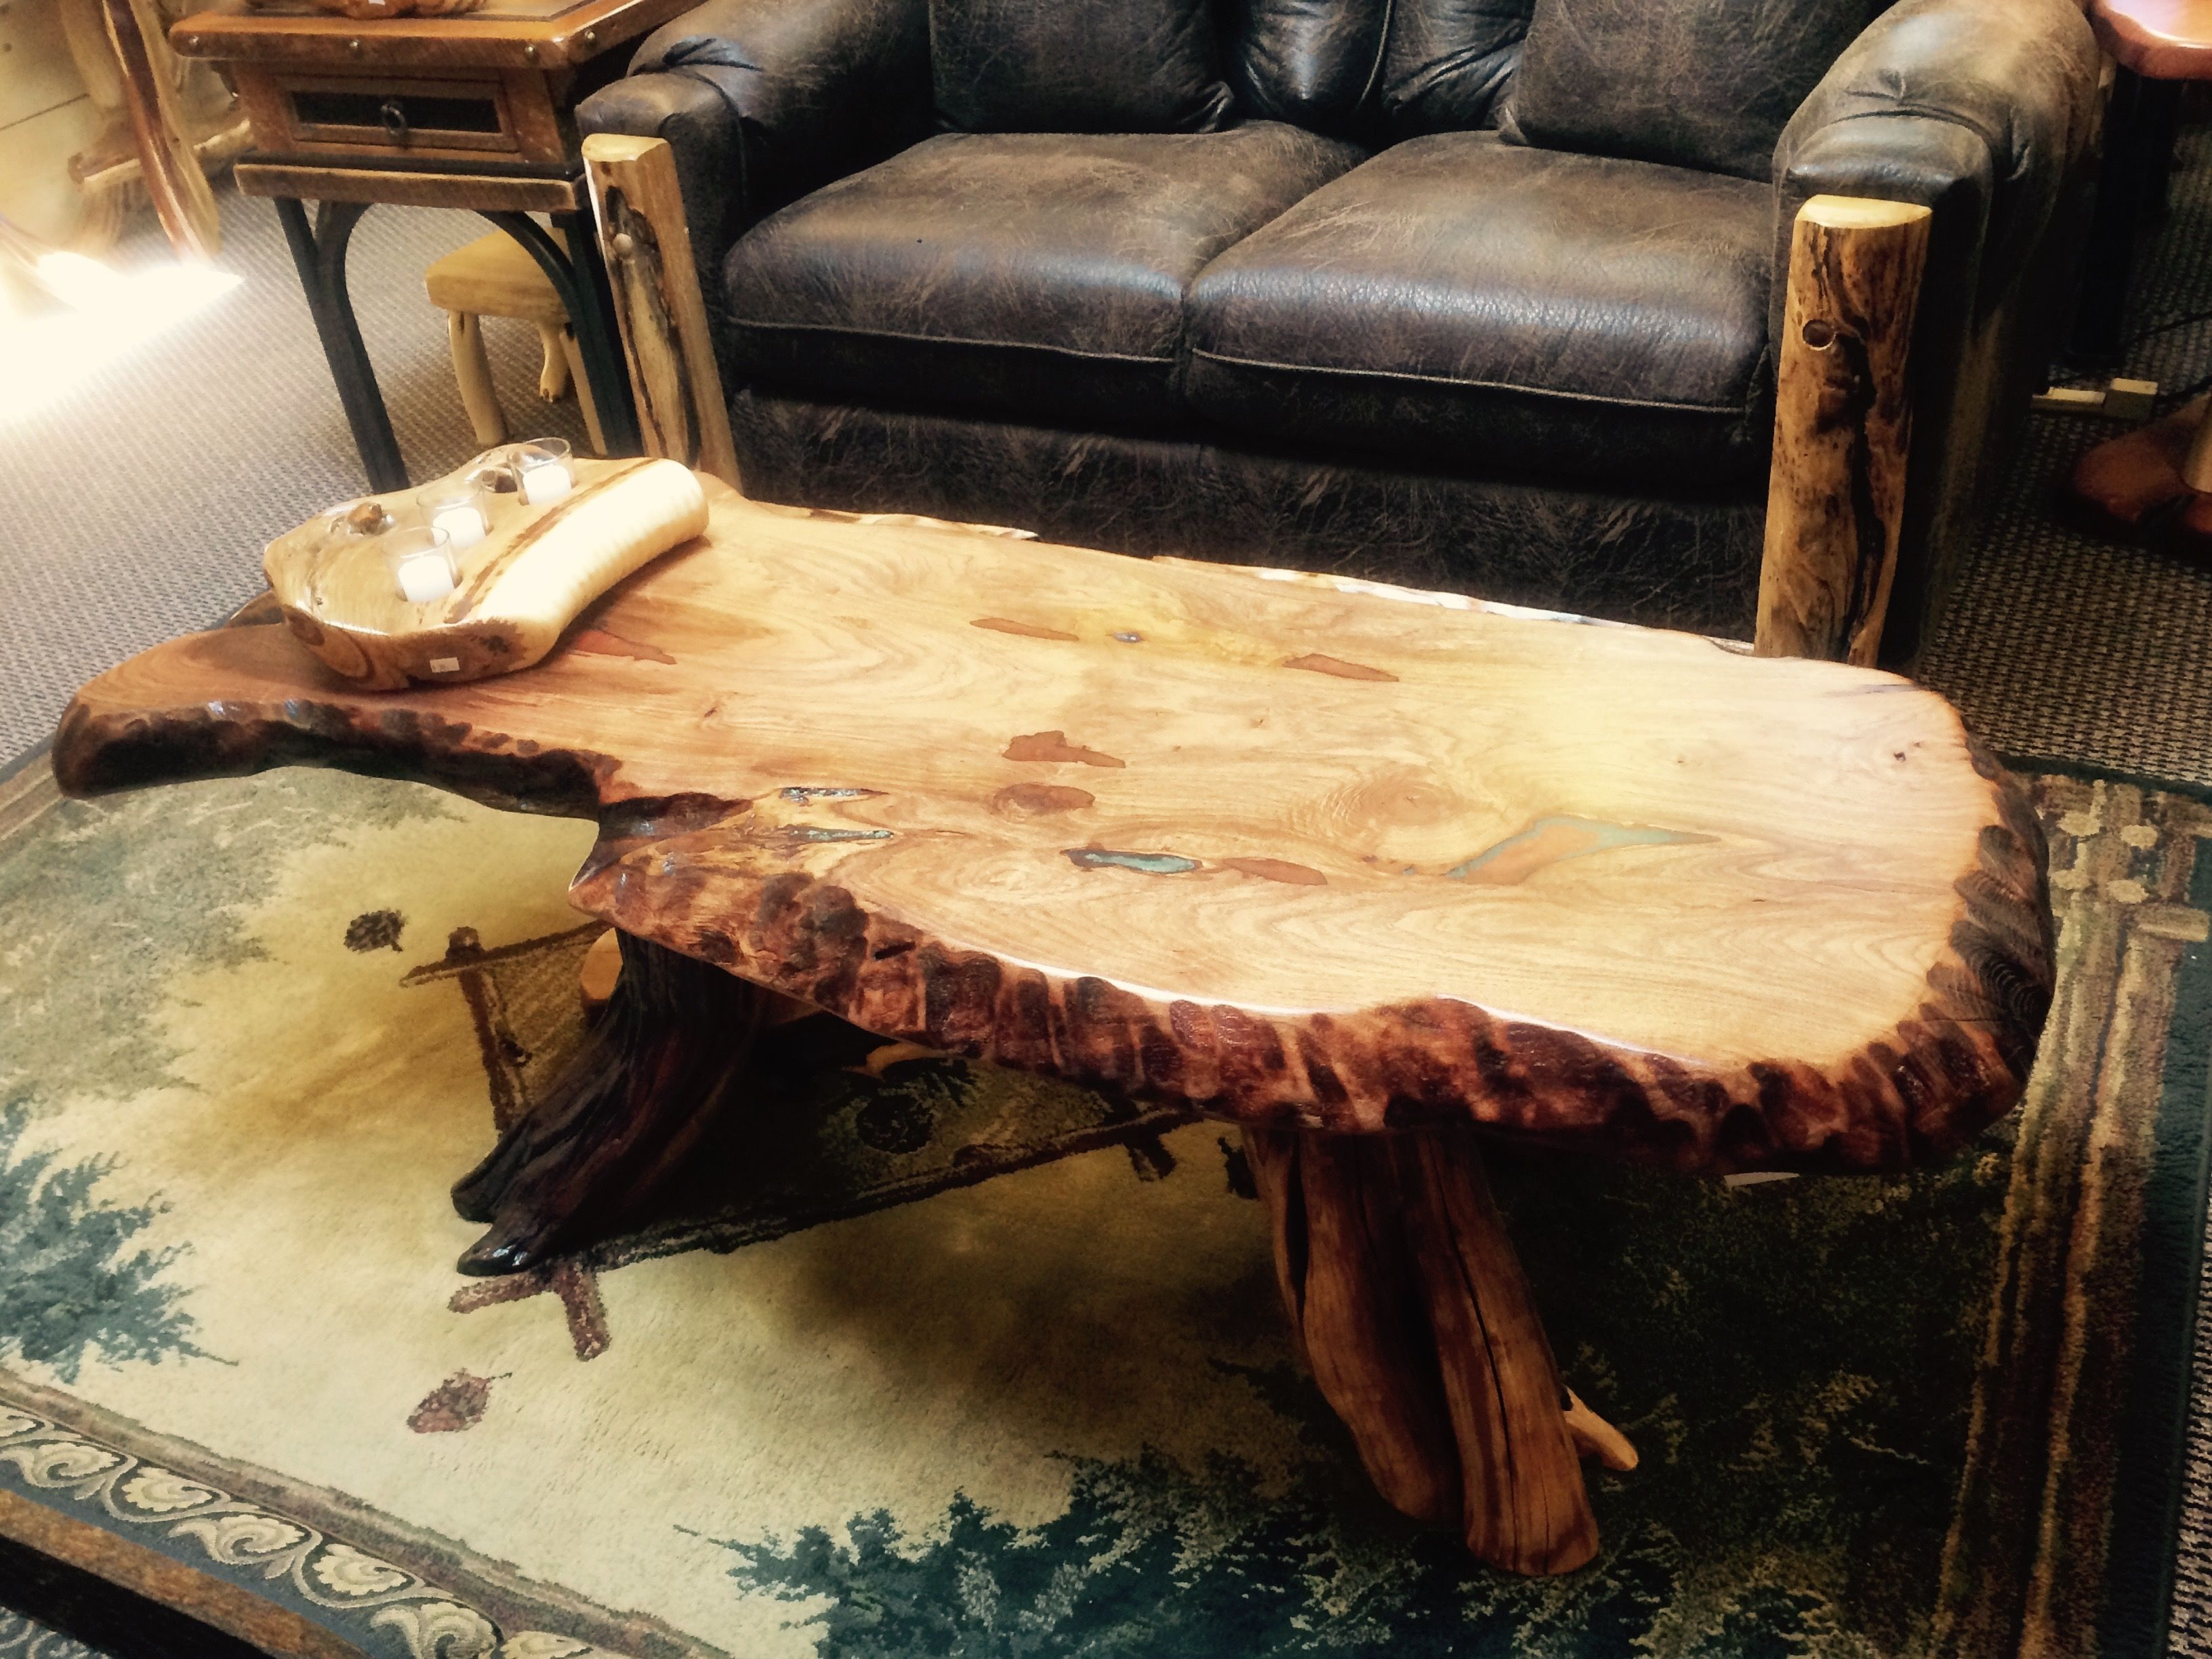 Pin By Jin Tian On Toby Wood Craft Wood Crafts Coffee Table Decor [ 2448 x 3264 Pixel ]